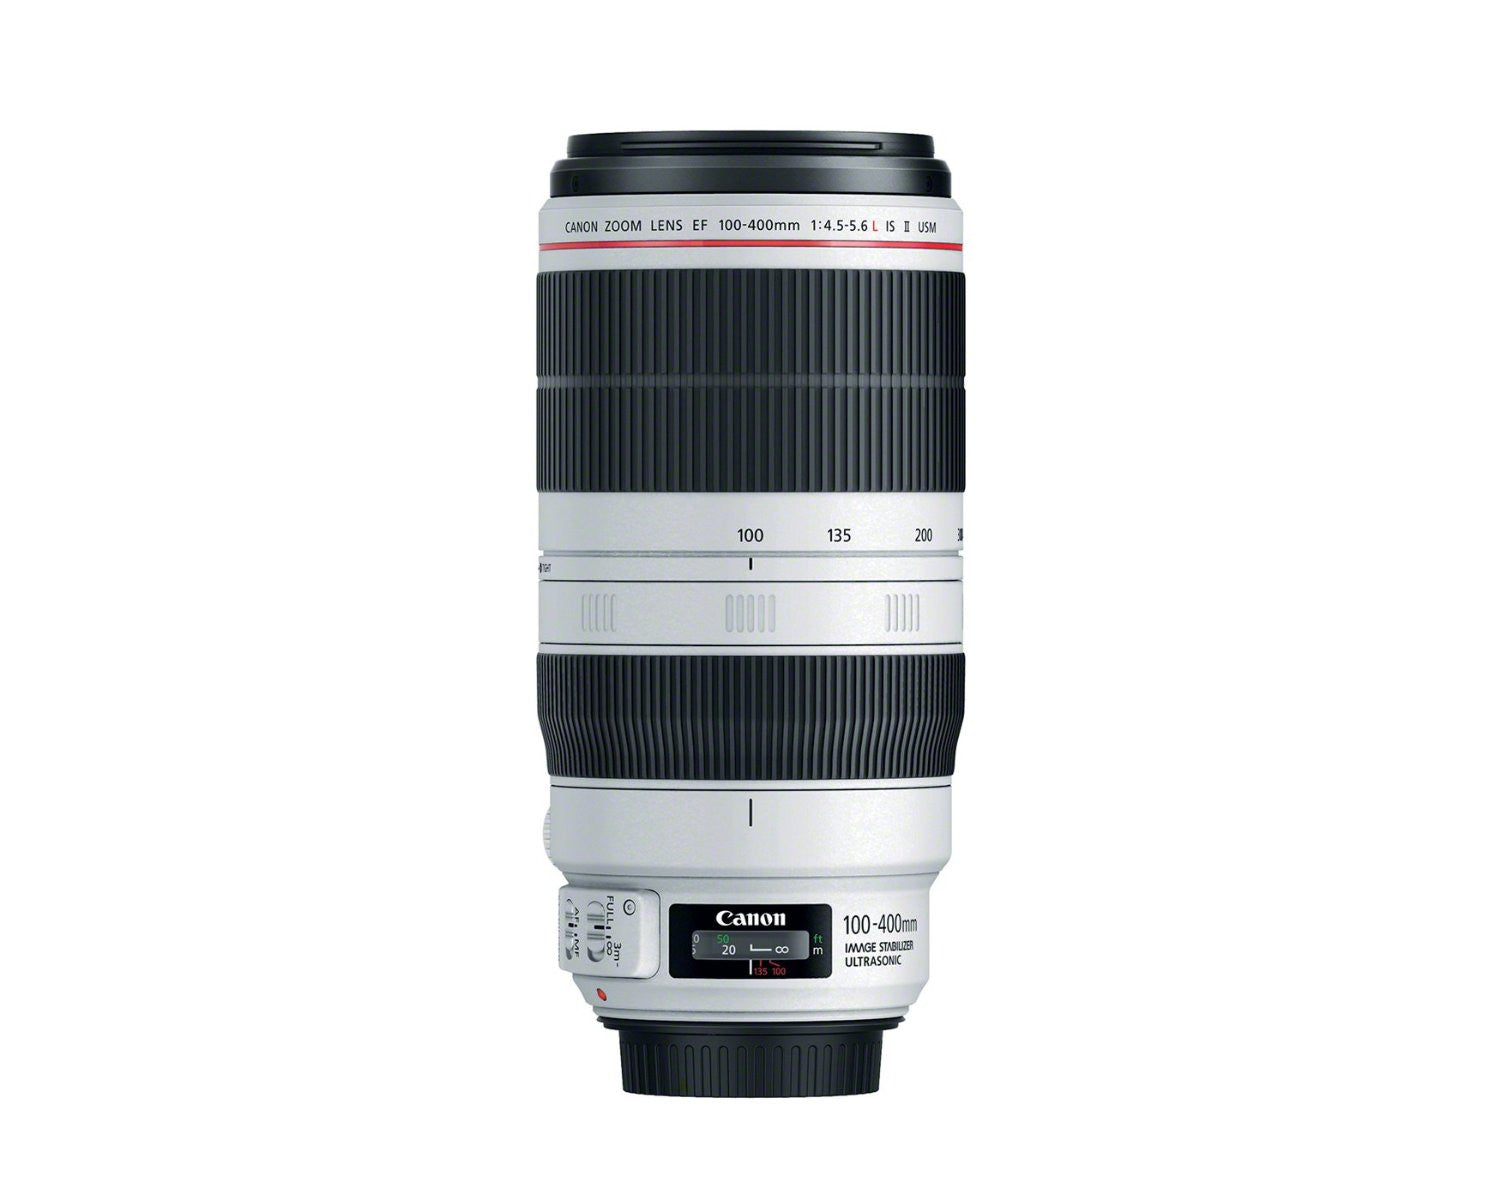 Canon EF 100-400mm f/4.5-5.6L IS II USM - Photo-Video - Canon - Helix Camera